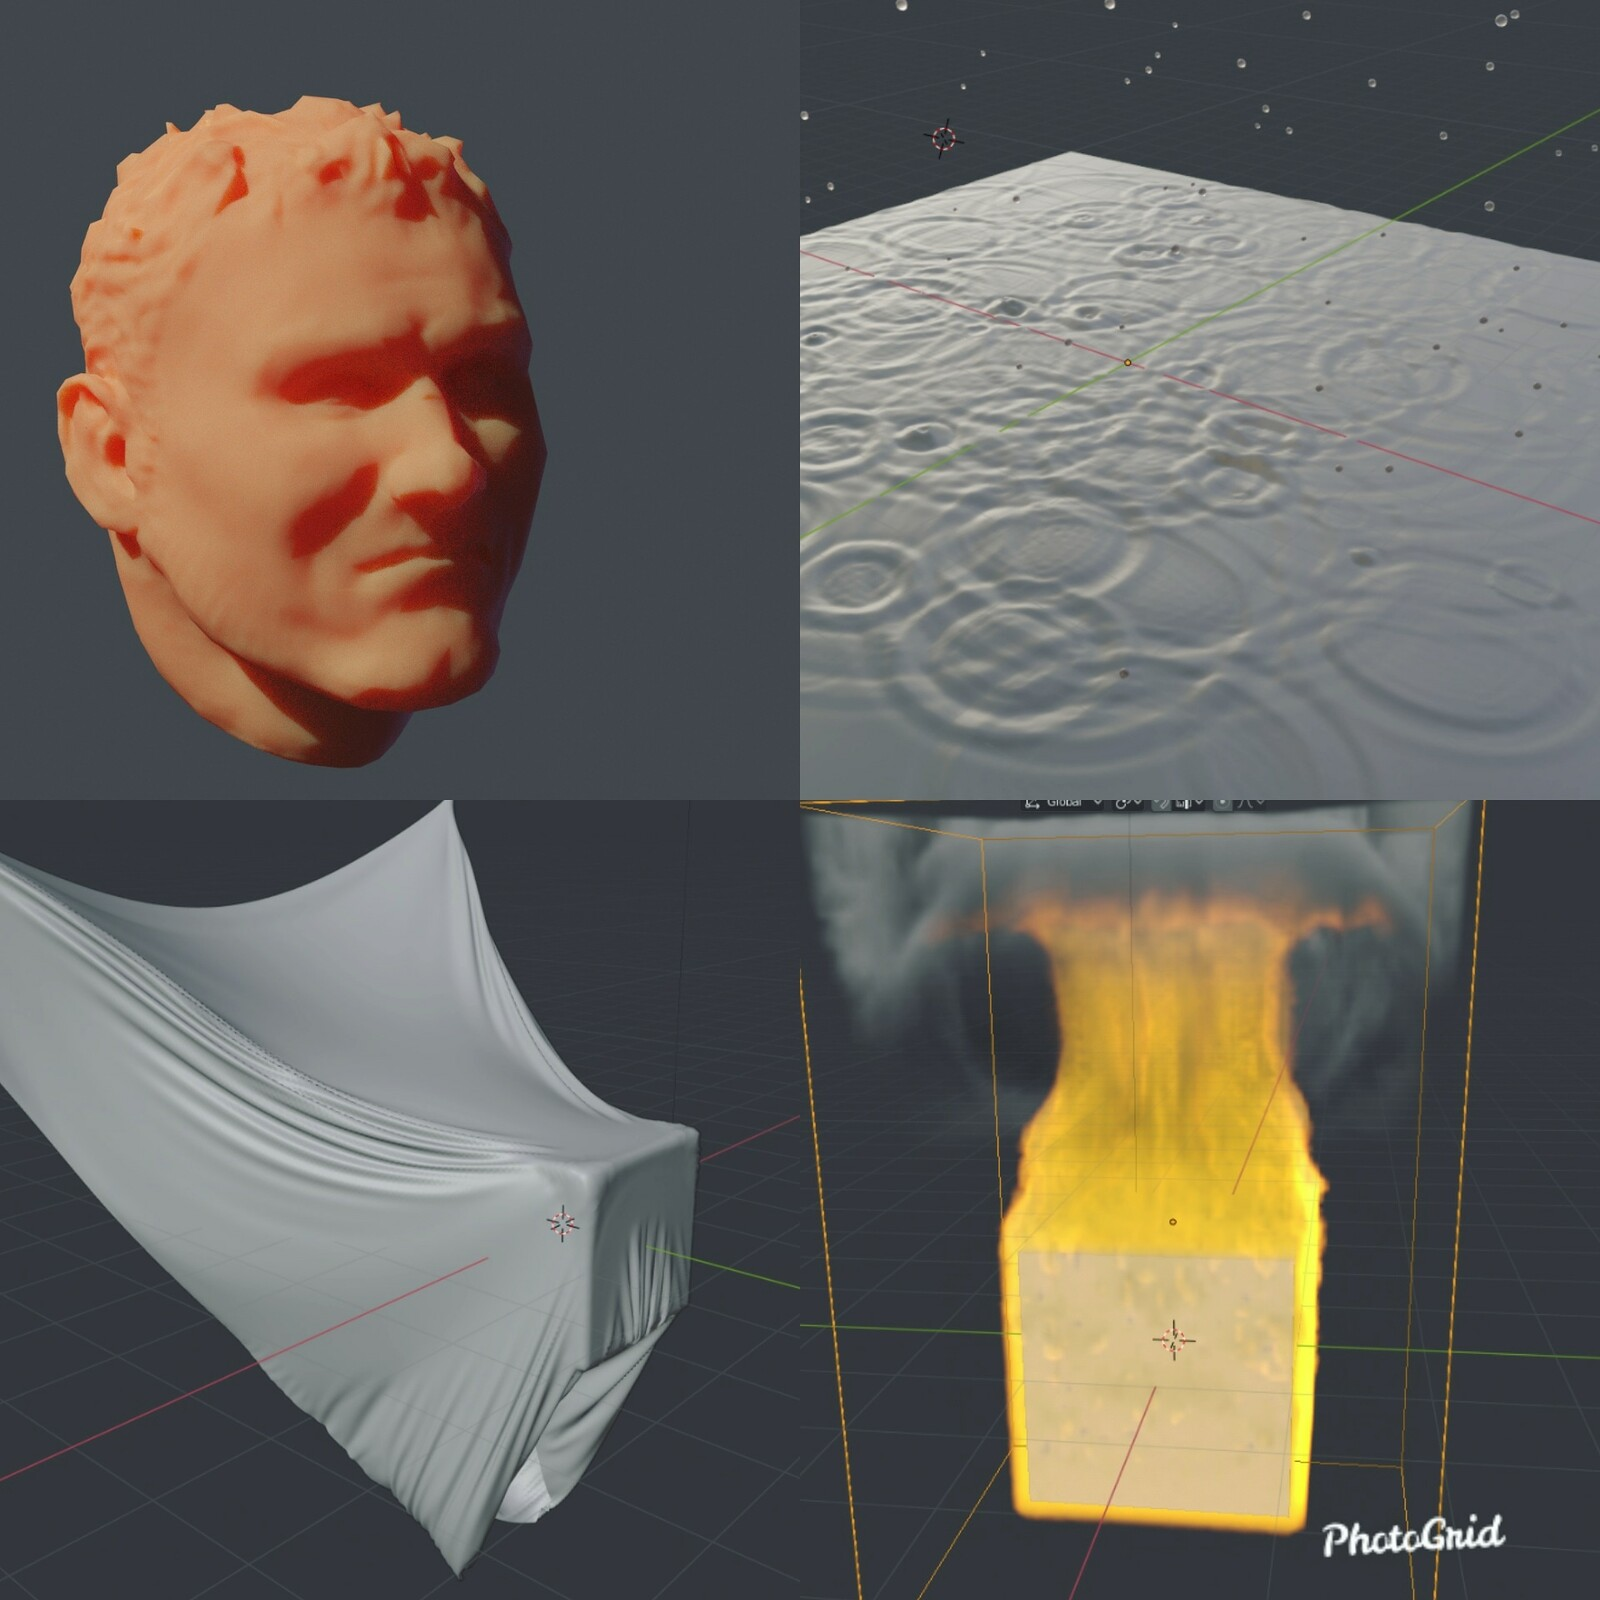 Playing around with Blender 3D's sculpting/normalmapping and physics tools.